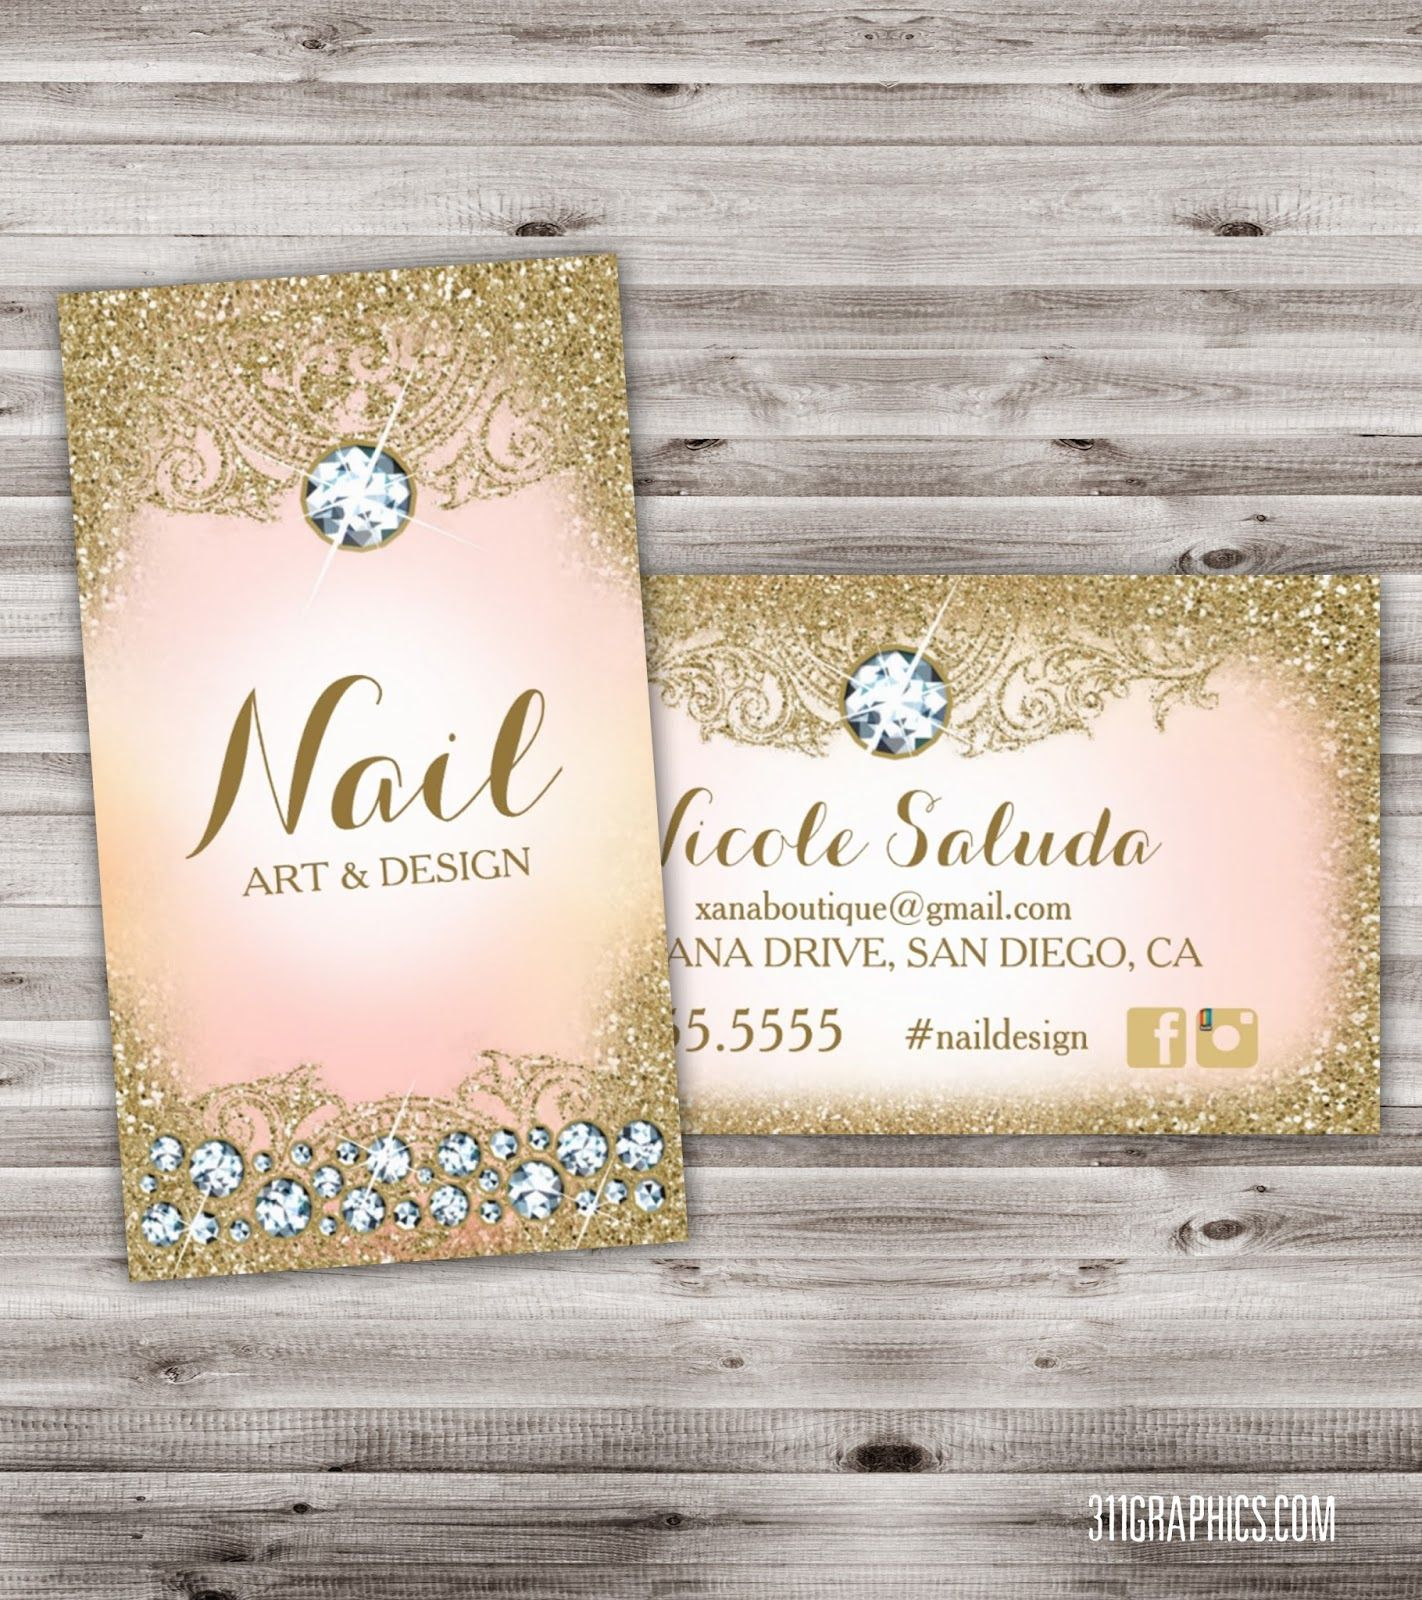 nail salon flyer template prices marketing flyers glitter glam nail art business card diamonds upscale design gold pink